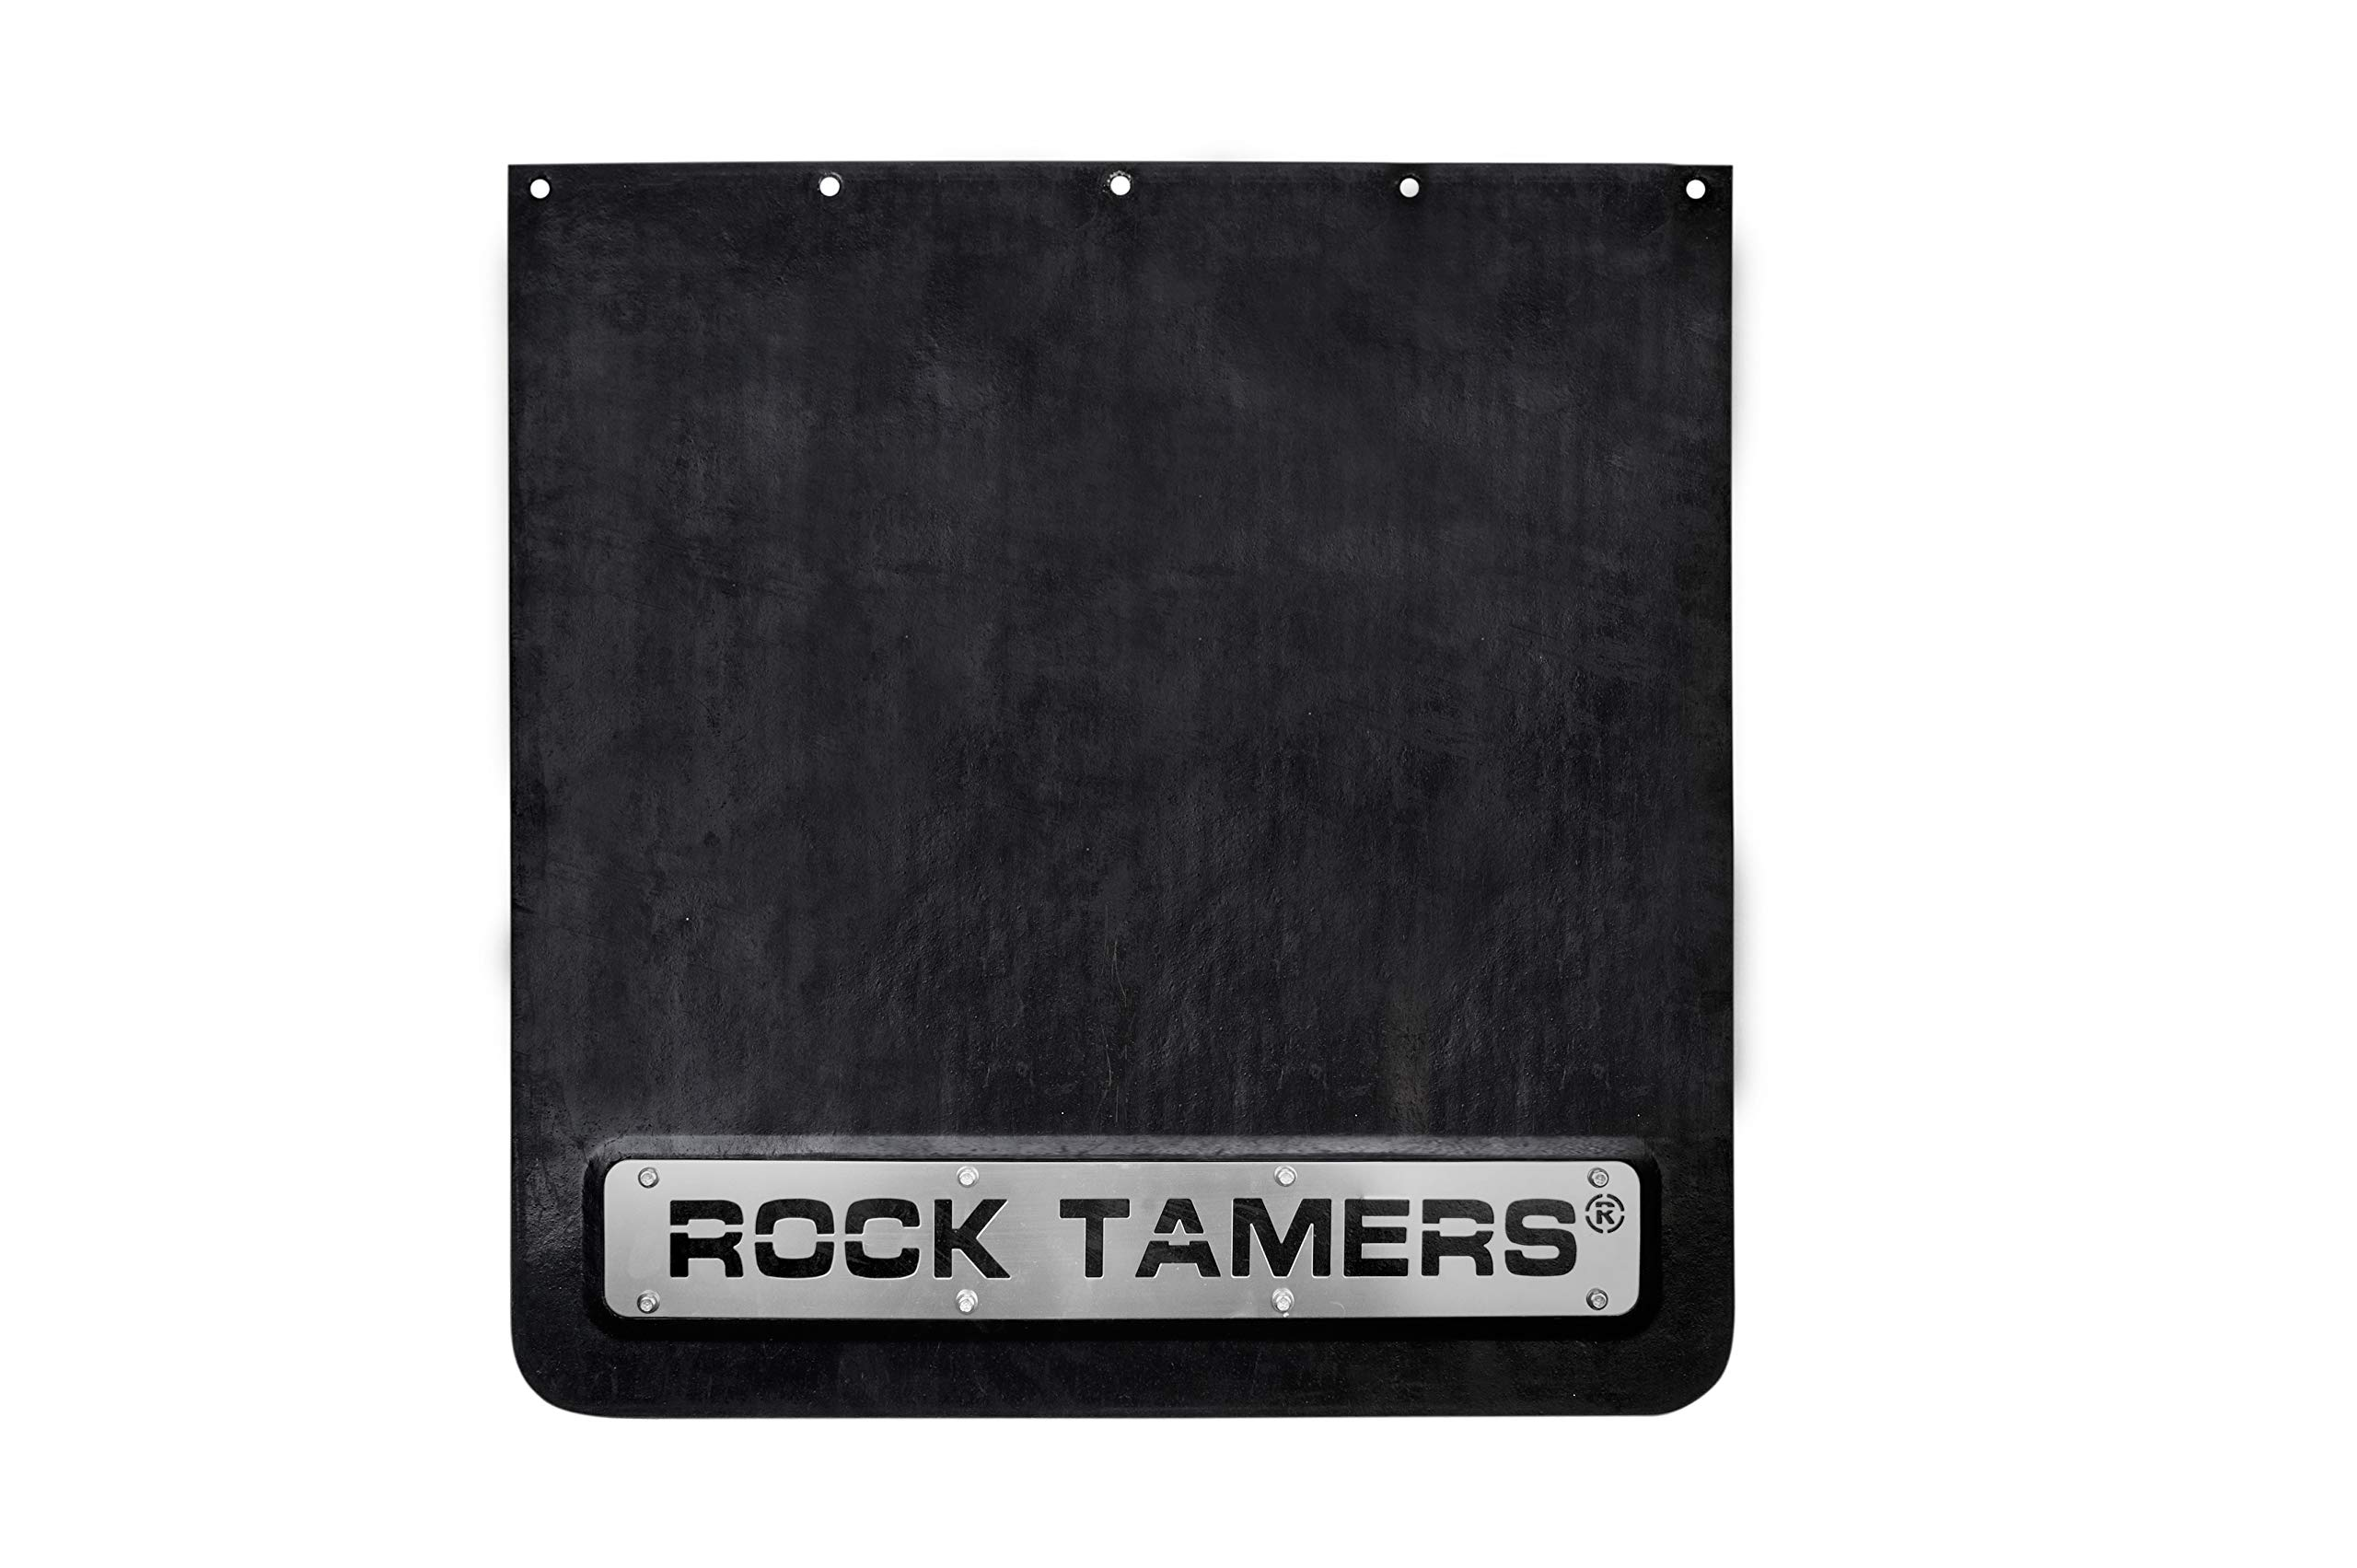 ROCK TAMERS (00110) 2.5'' Hub Mudflap System with Matte Black Stainless Steel Trim Plates by Rock Tamers (Image #1)